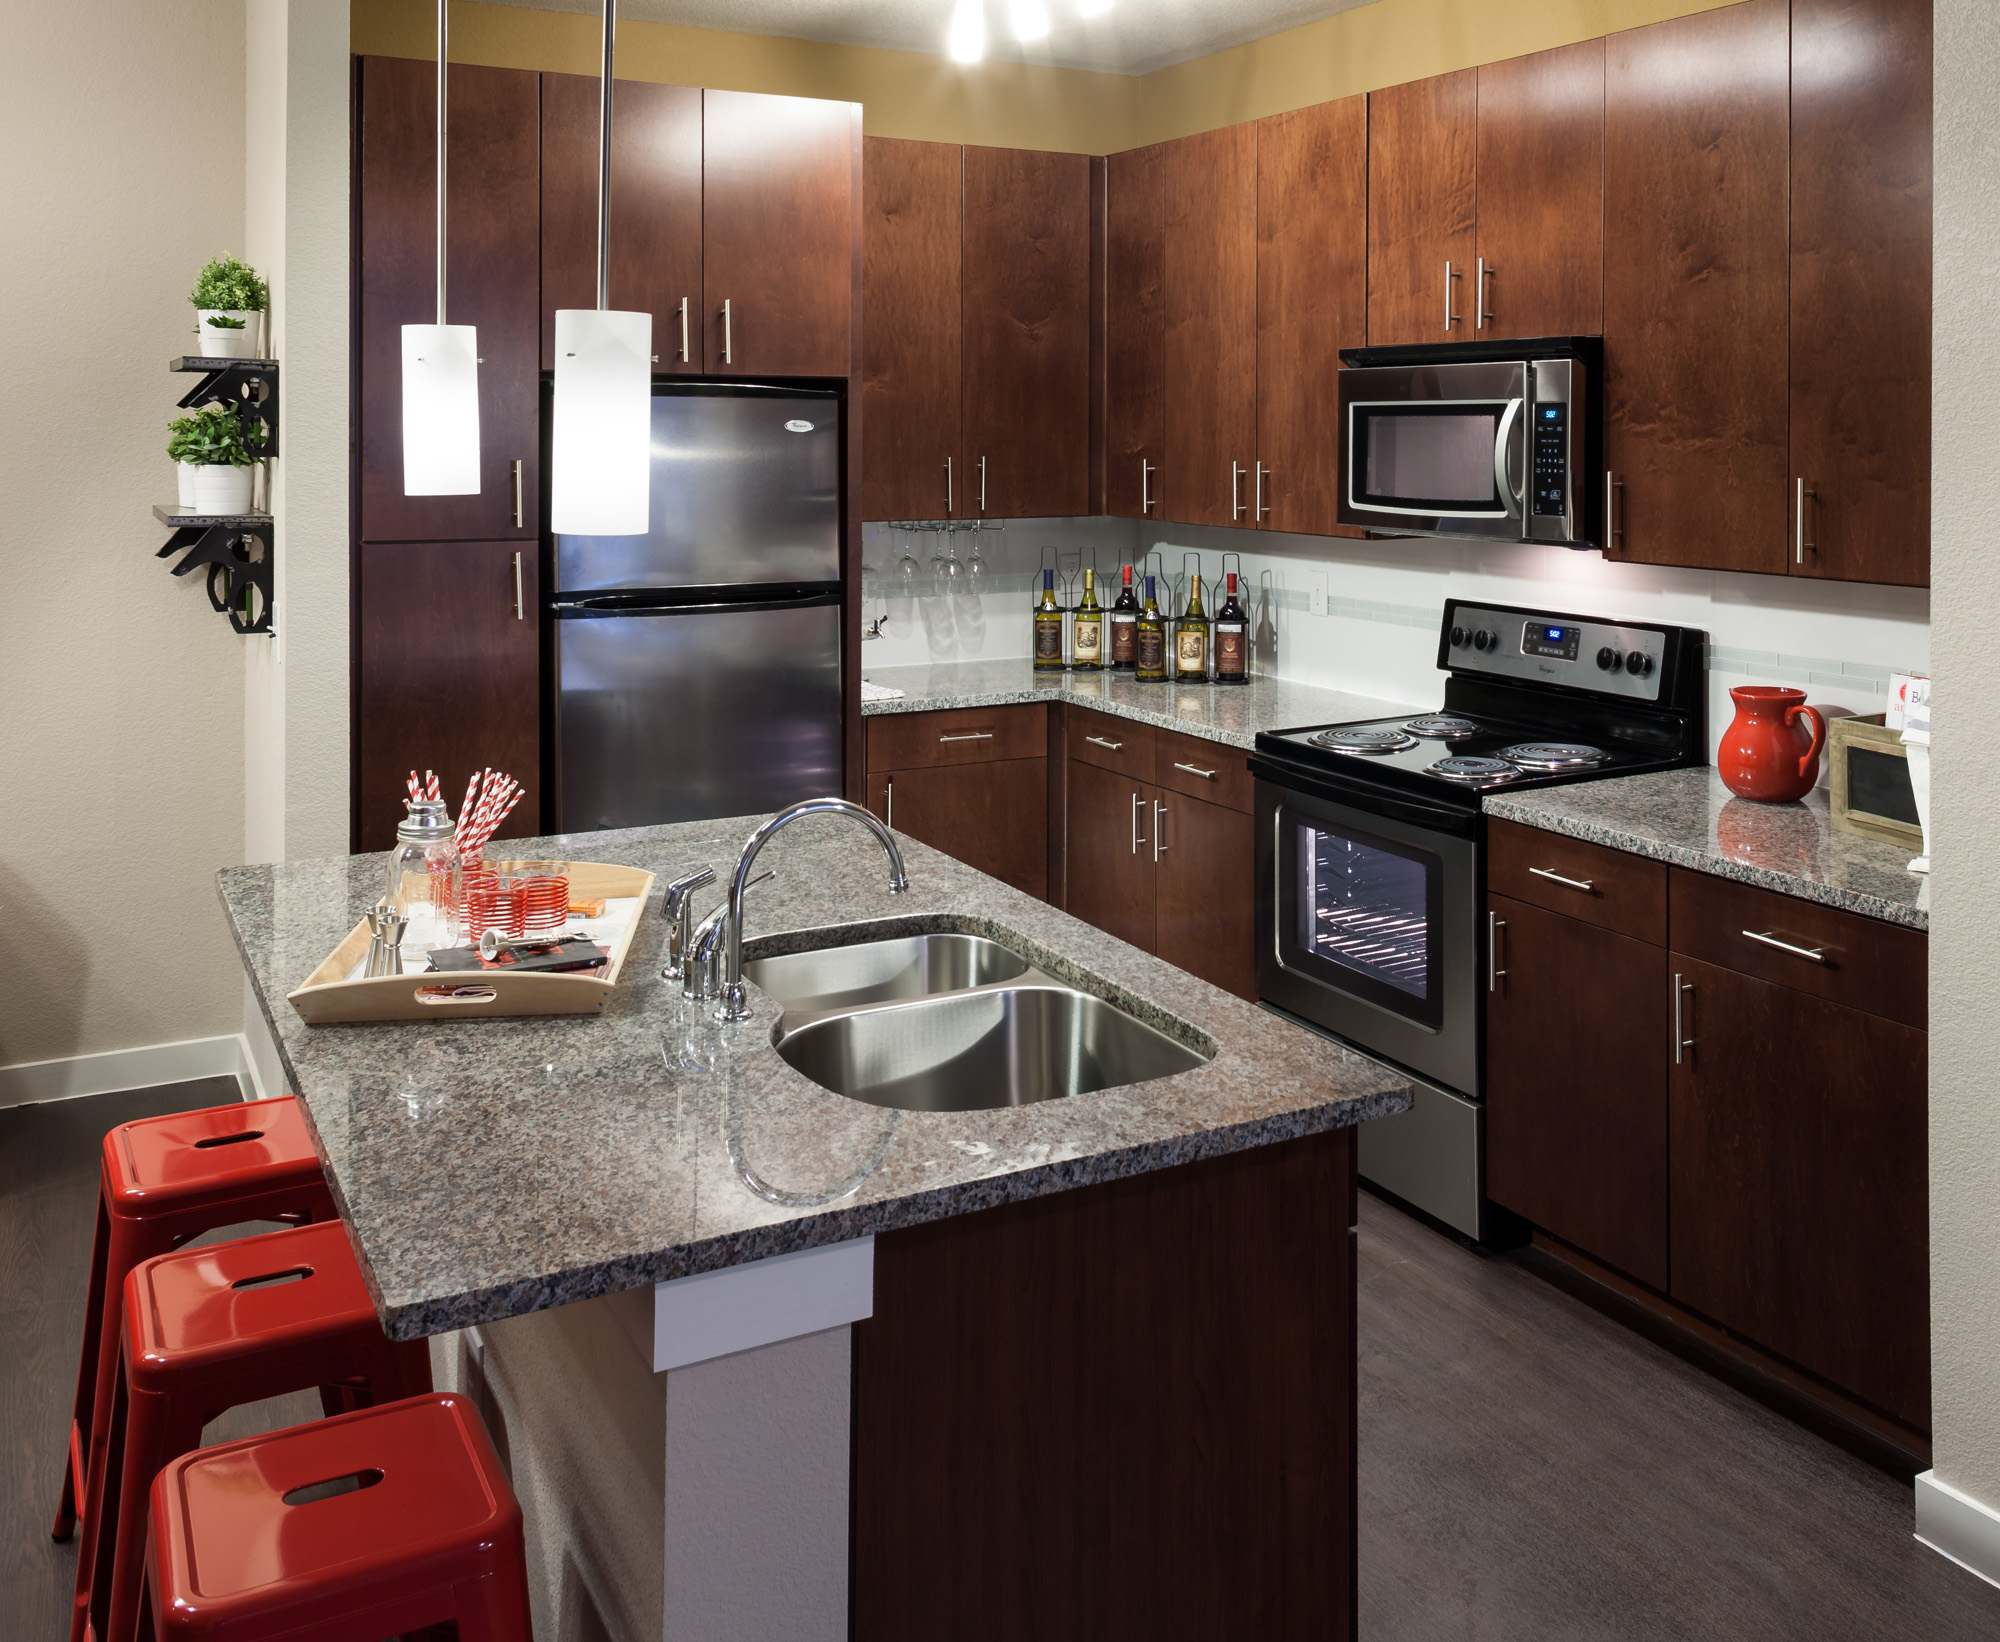 State-of-the-Art Kitchen | San Antonio Apartments | 1800 Broadway